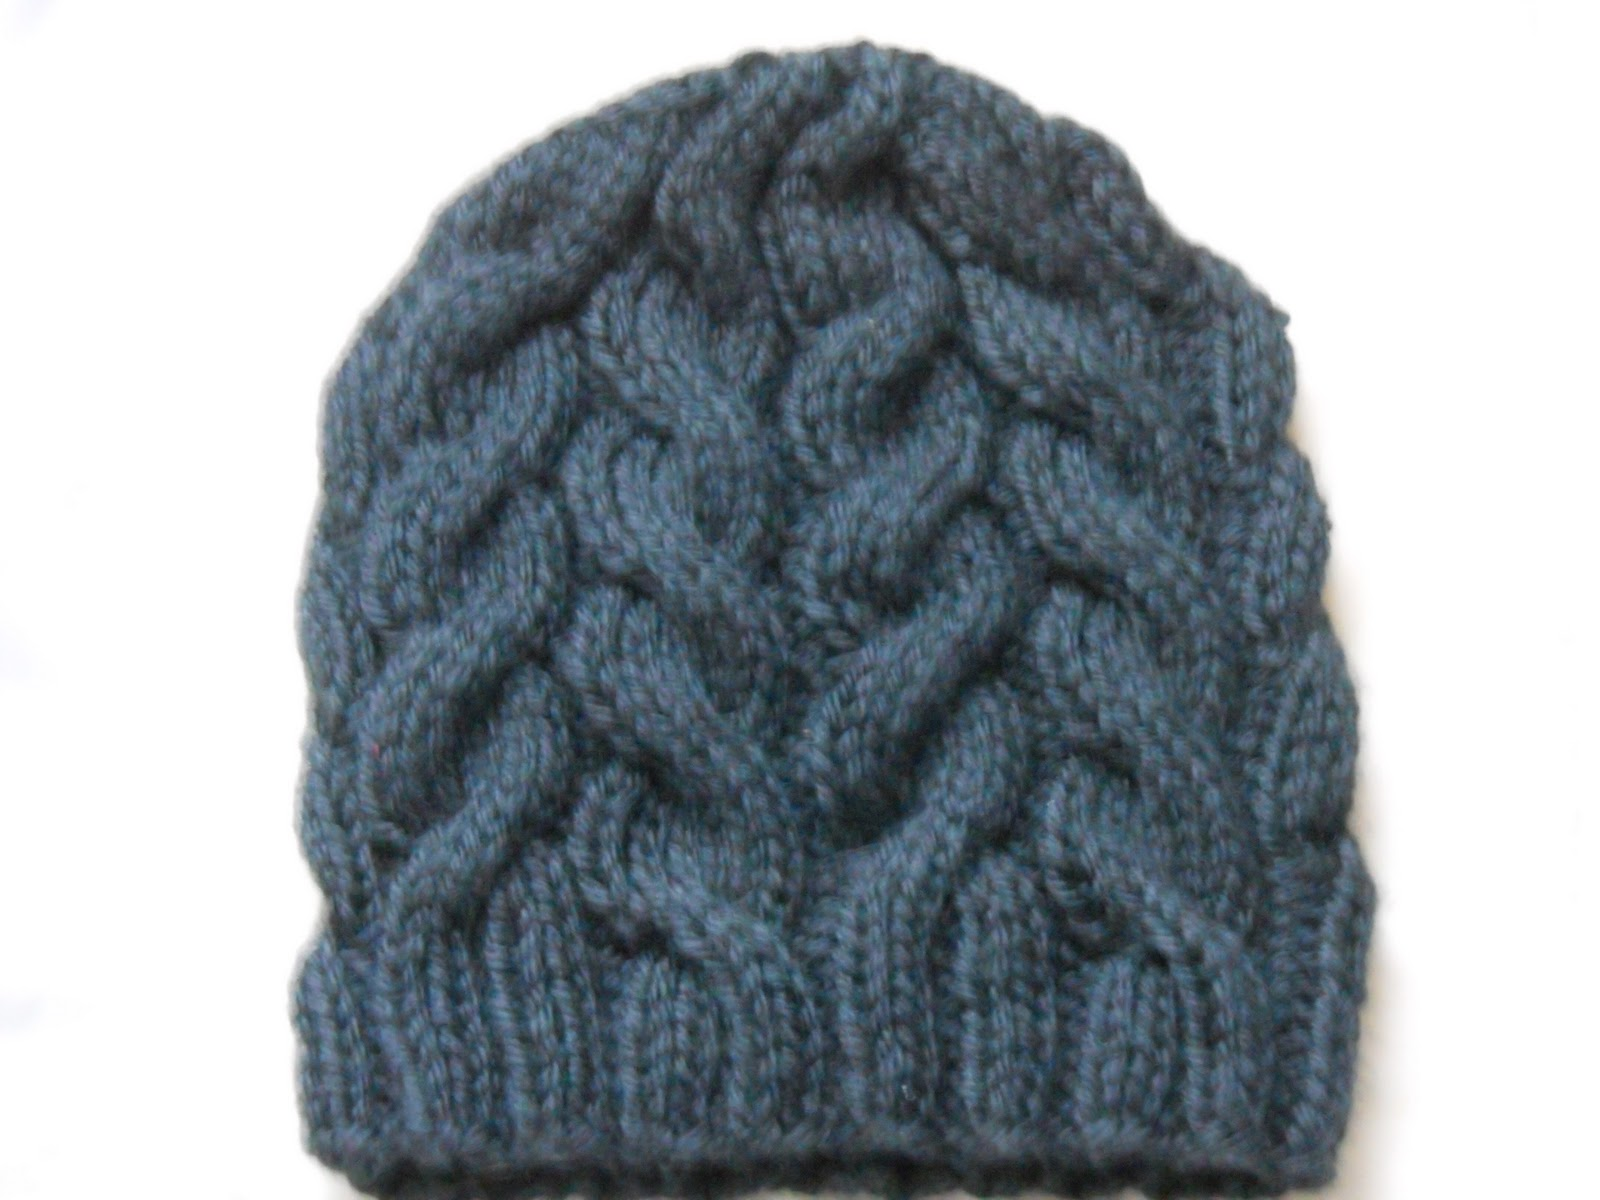 Knitting Patterns Caps : Cable Knit Hat Pattern A Knitting Blog